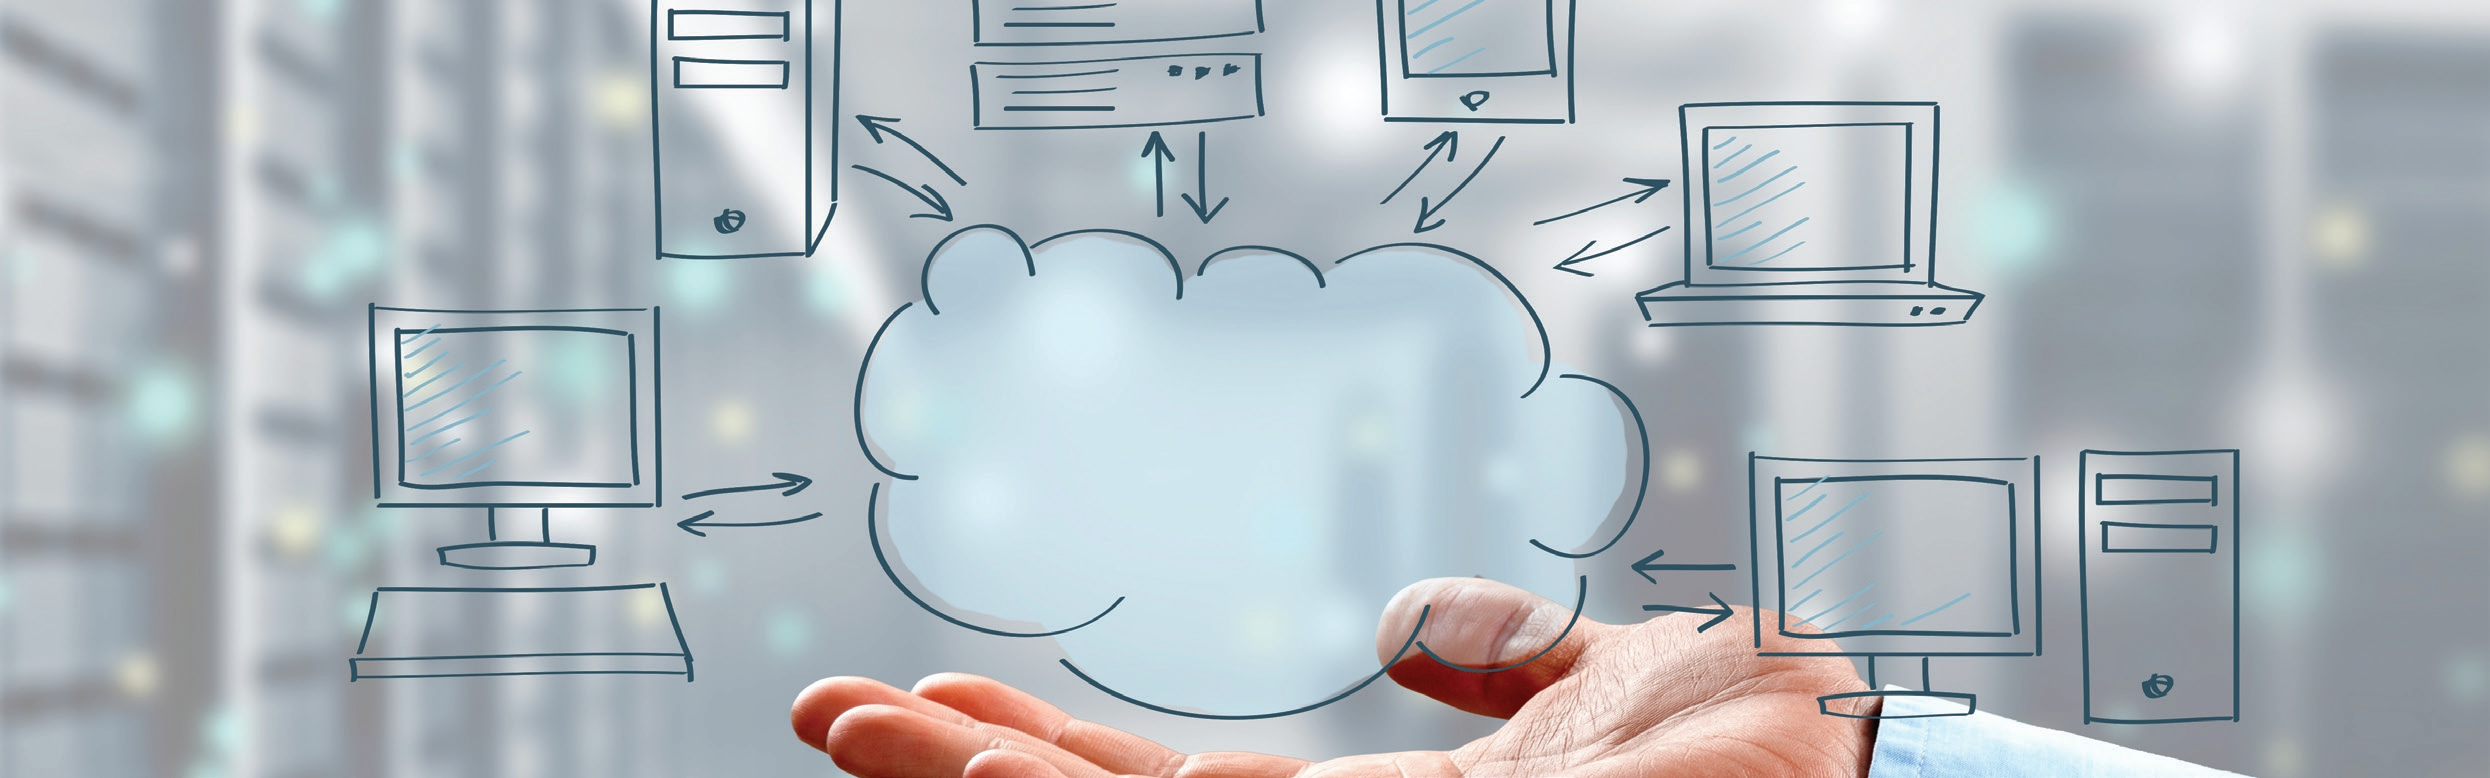 Image of a hand holding a cloud with a computer, filer and tablets floating over it